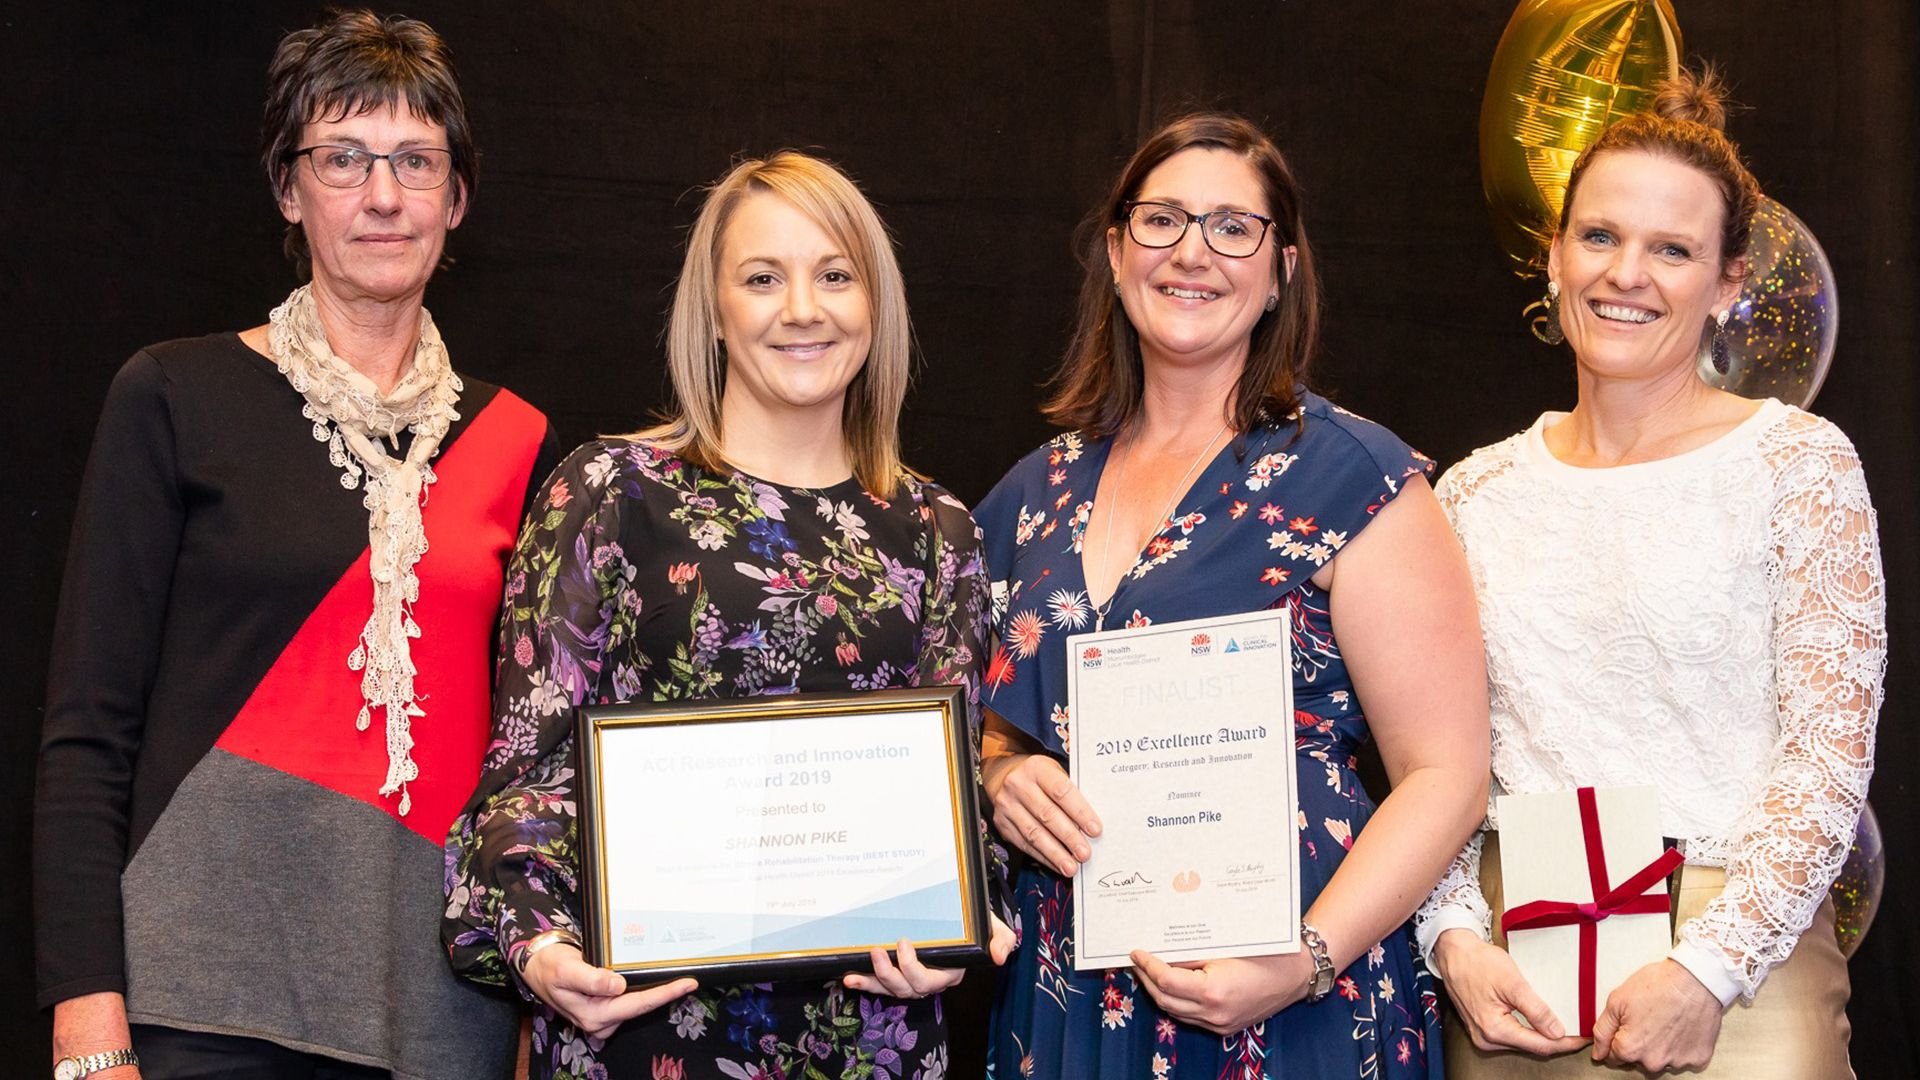 Charles Sturt's health research partner program wins award